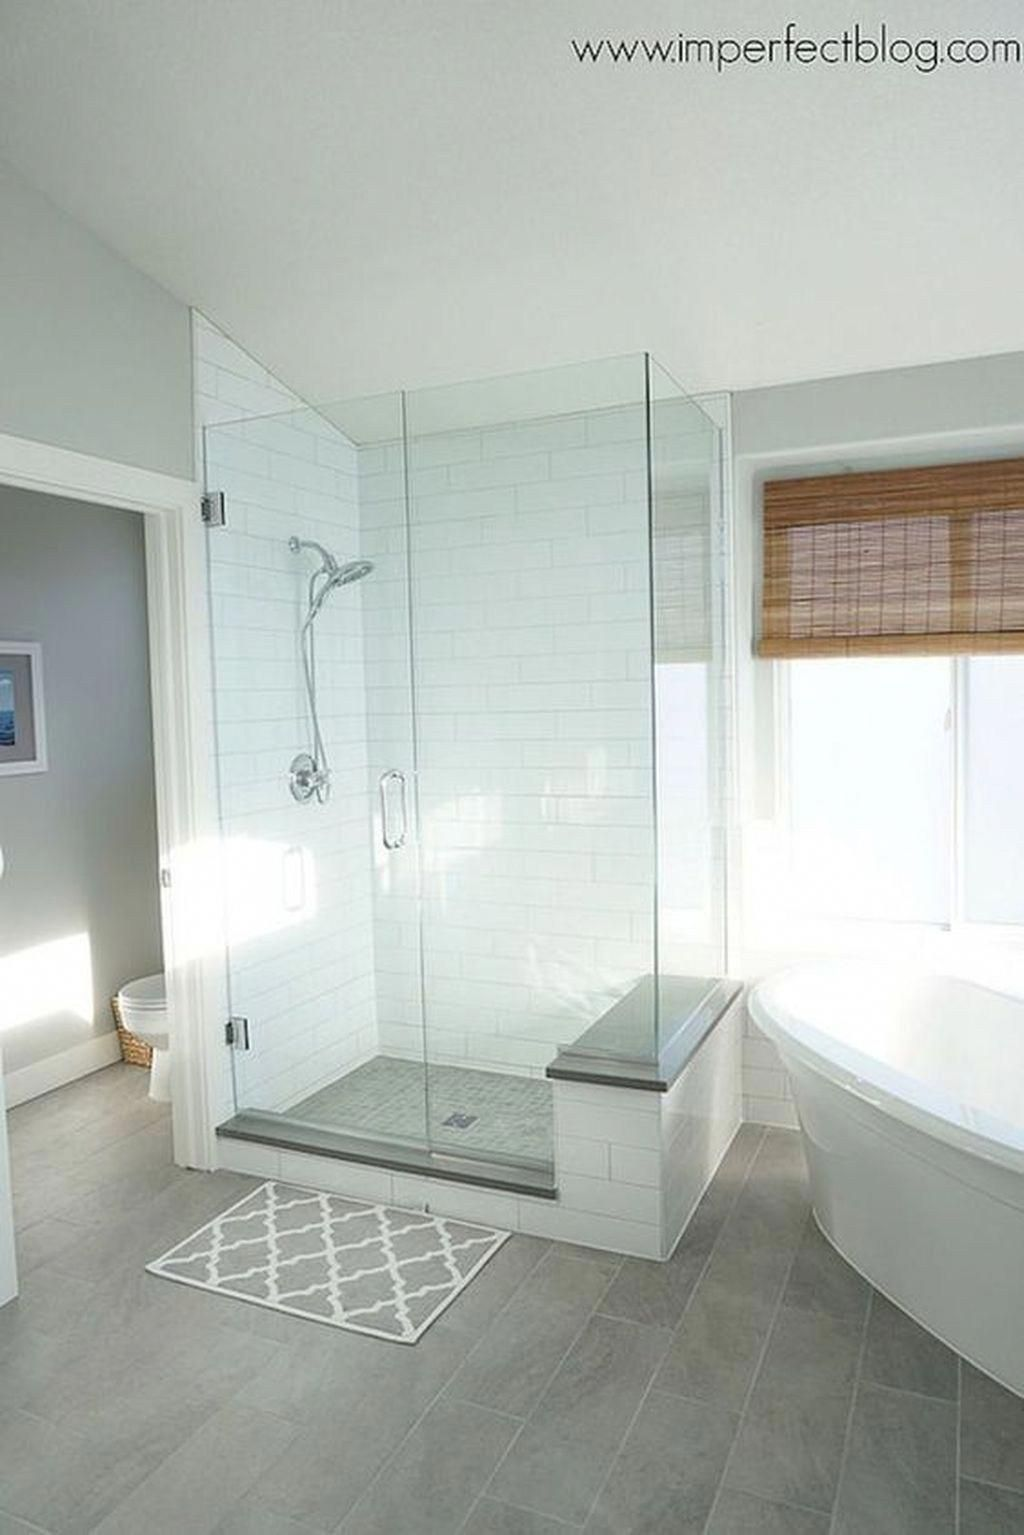 8x8 Bathroom Layout Bathroomaccessoires 8x8 Bathroom Layout Bathroomshot